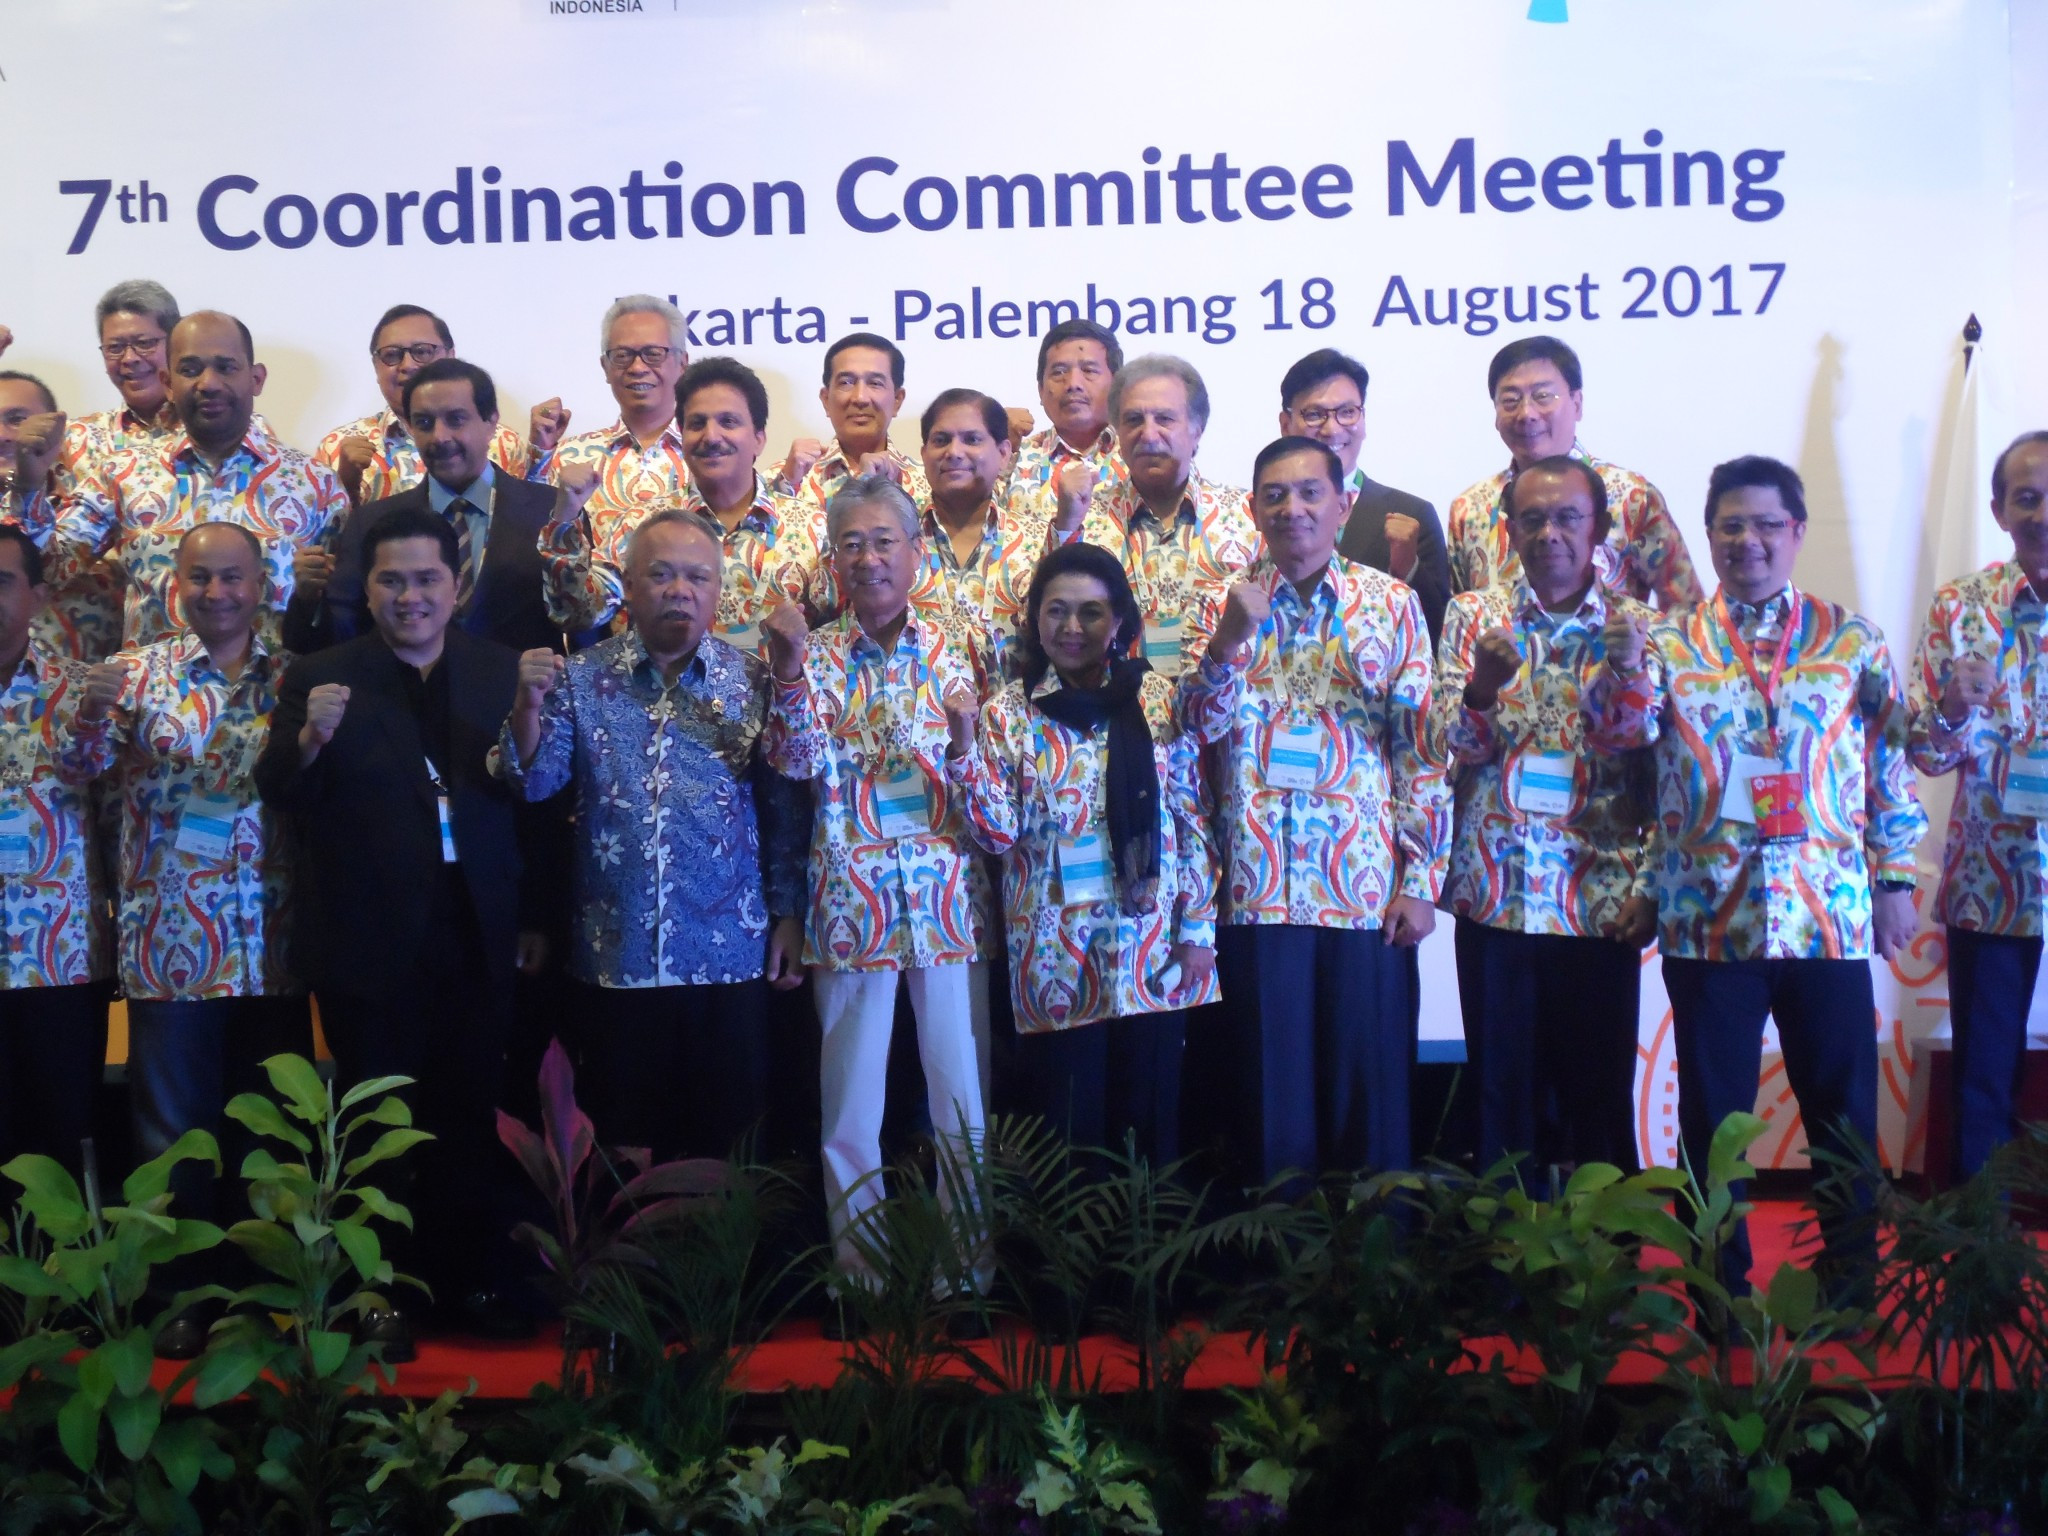 Delegates and officials celebrate a productive and successful 7th Coordination Committee meeting in Jakarta exactly a year before the 18th Asian Games get underway there ©OCA